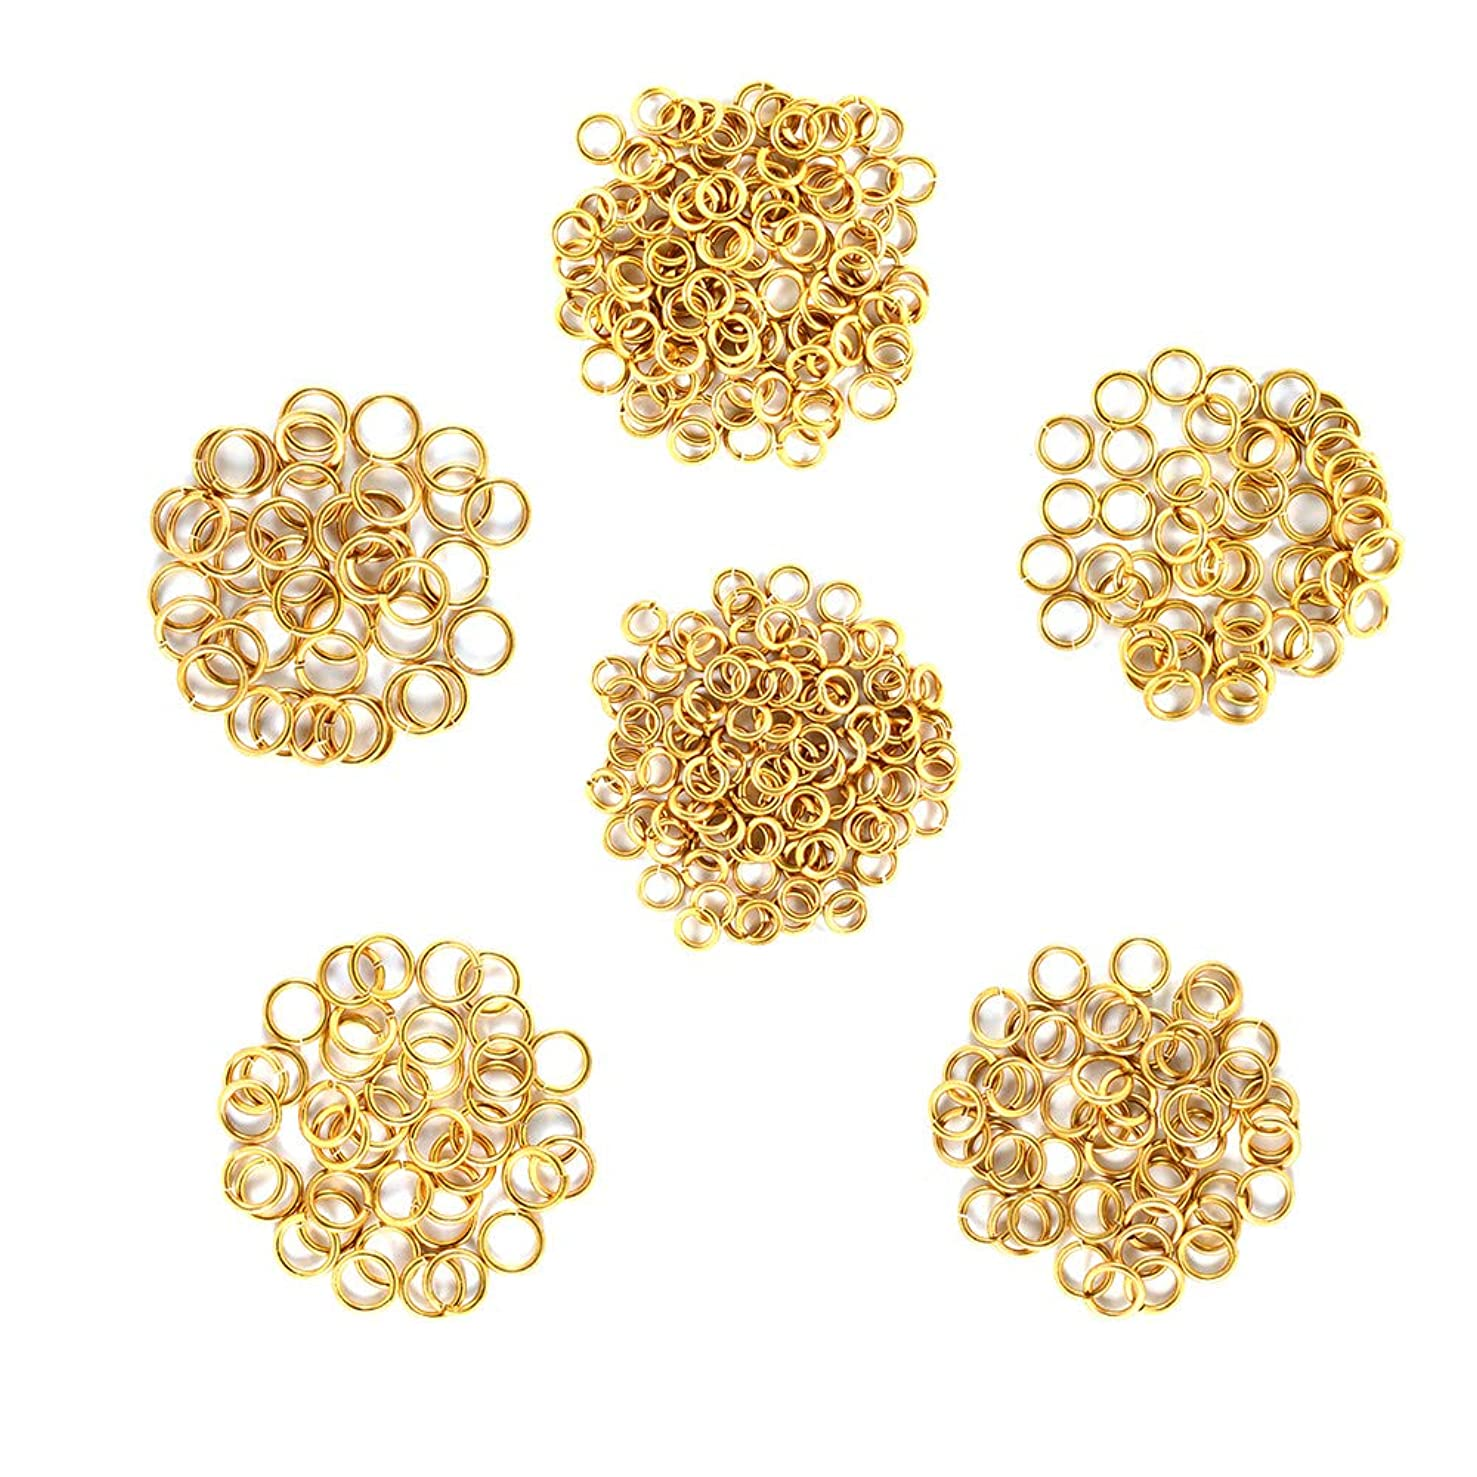 Bare Brass - Brass Jump Rings – 16 Gauge – 4.0mm to 6.5 mm ID - 240 Rings